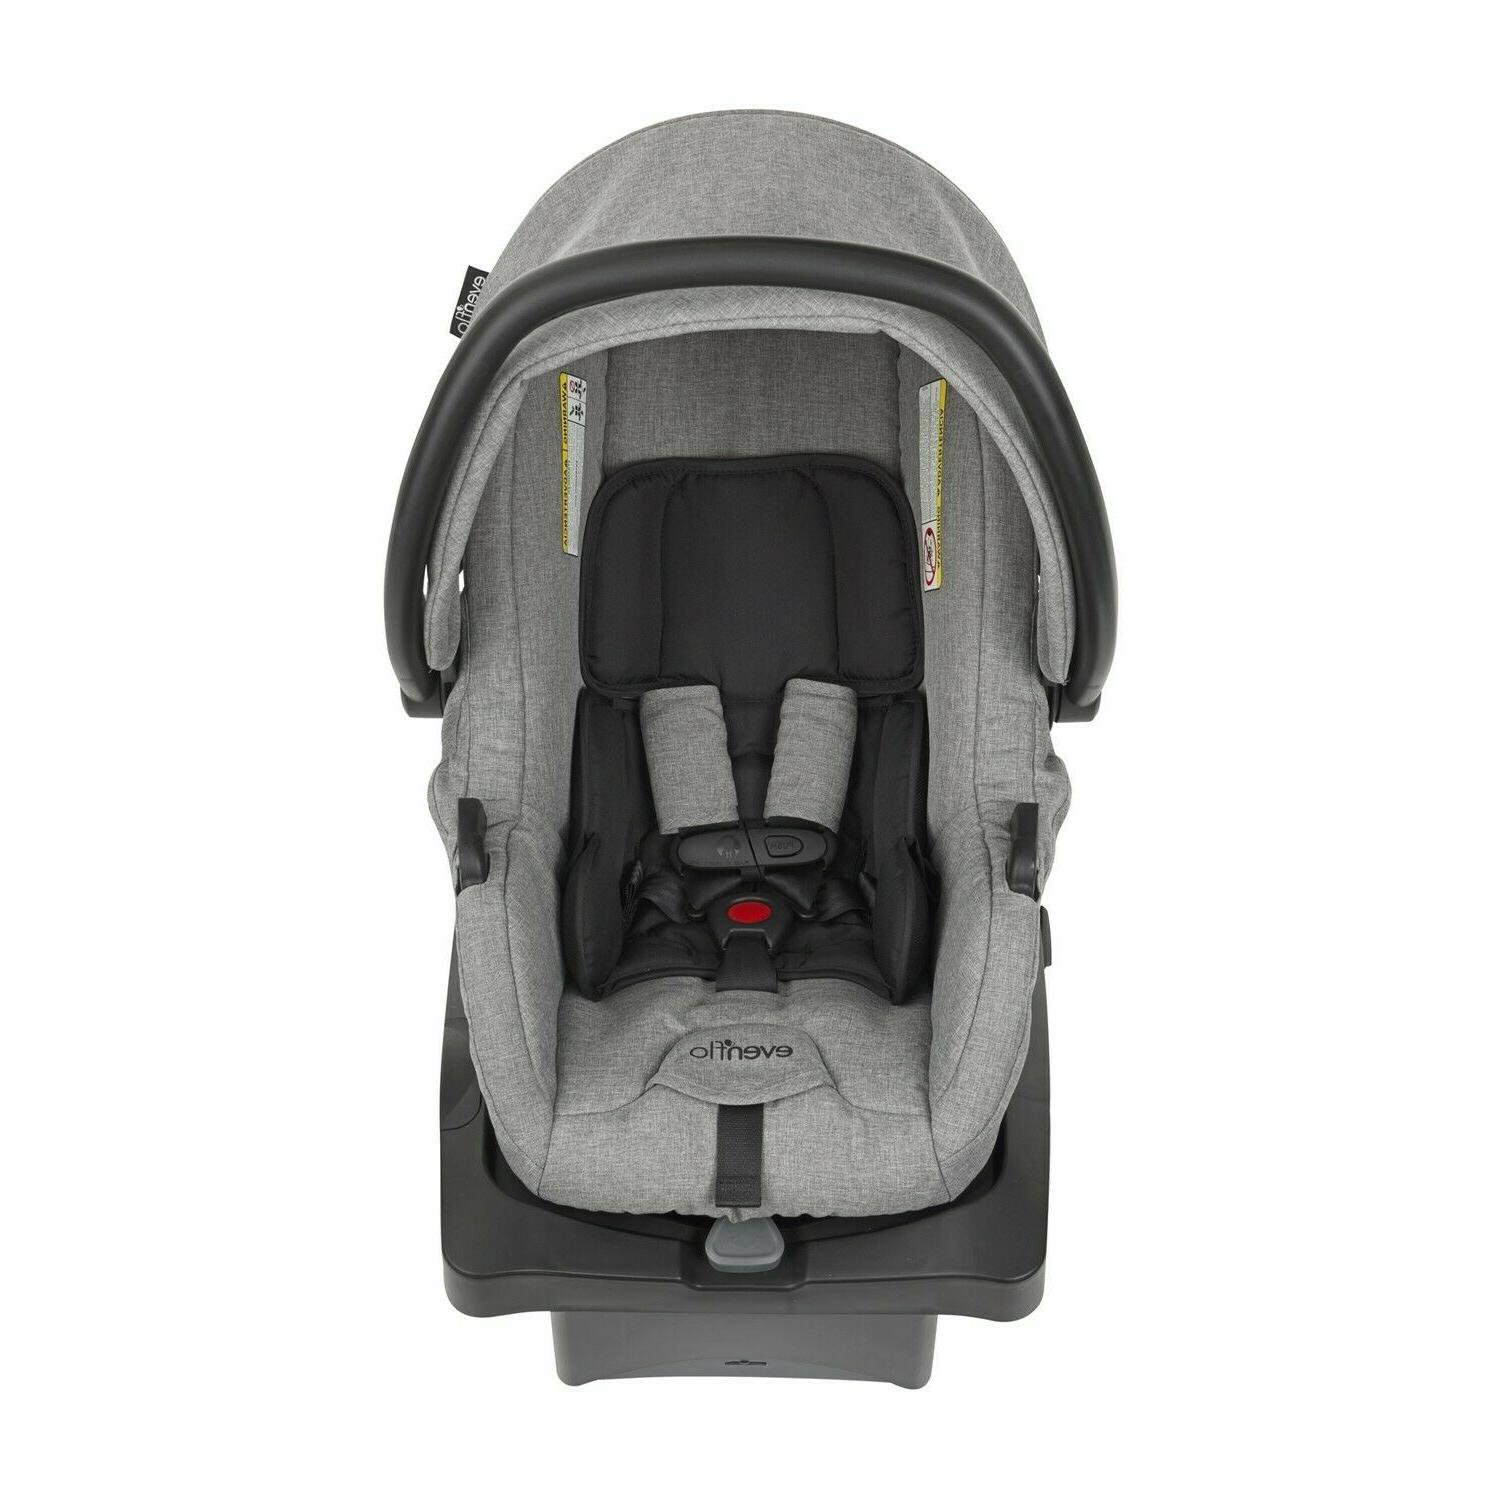 Evenflo Travel System Car Seat Set Bed